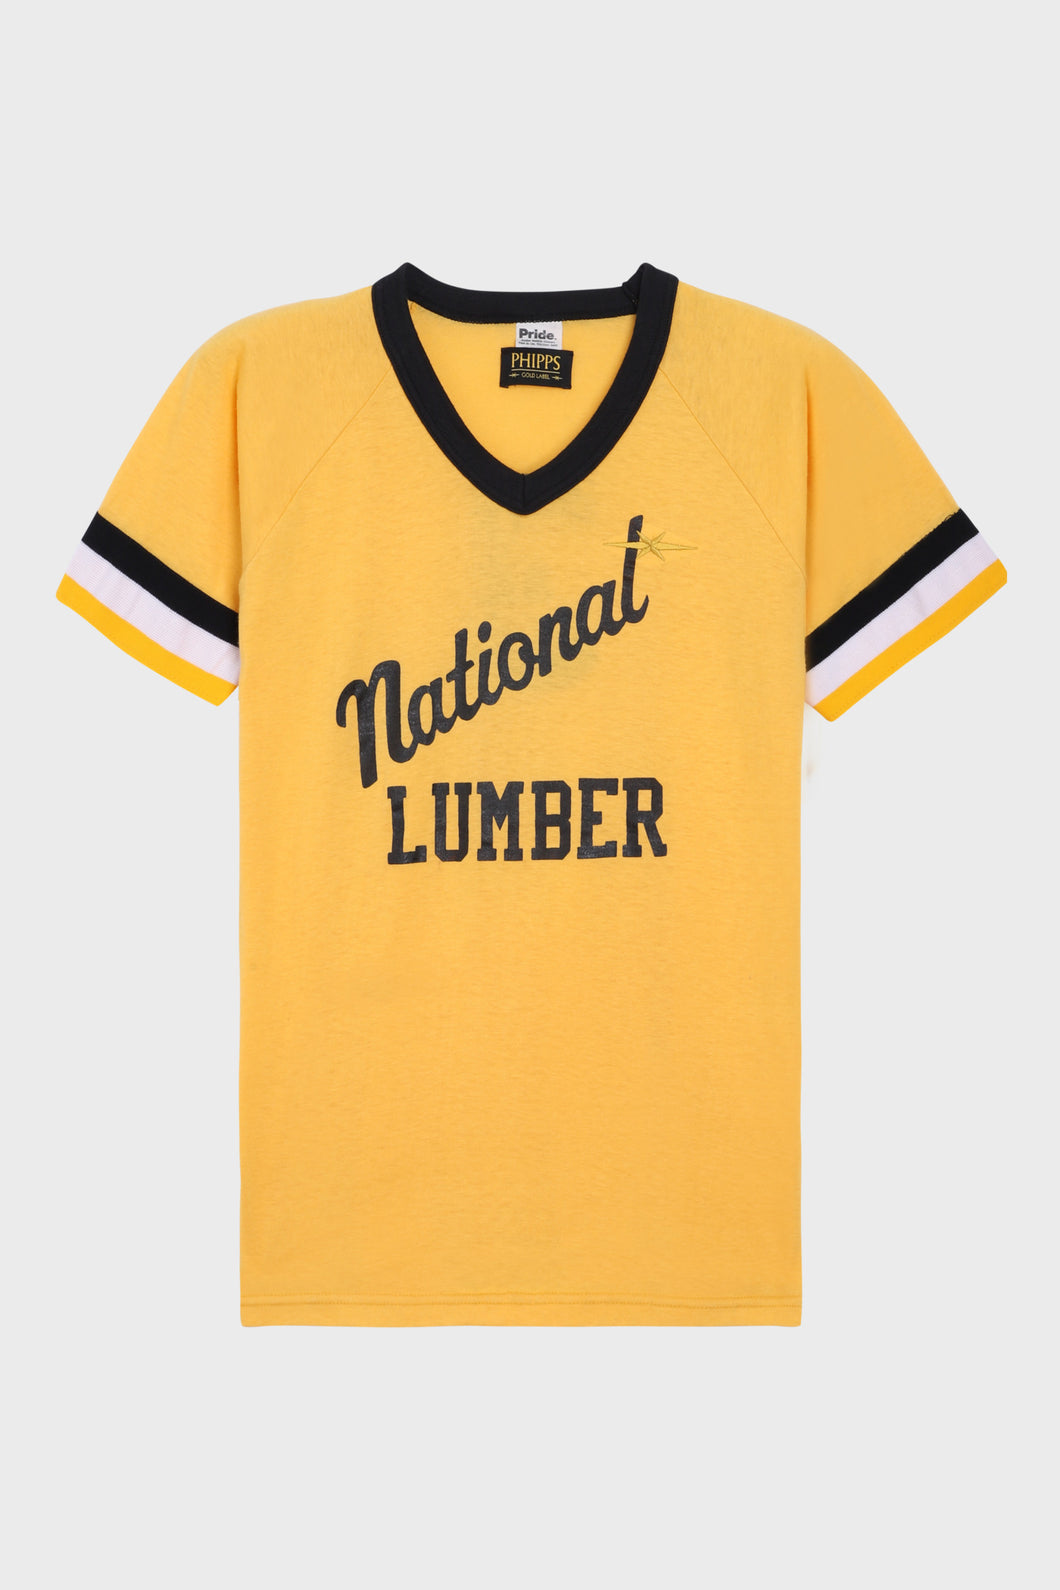 National Lumber T-Shirt